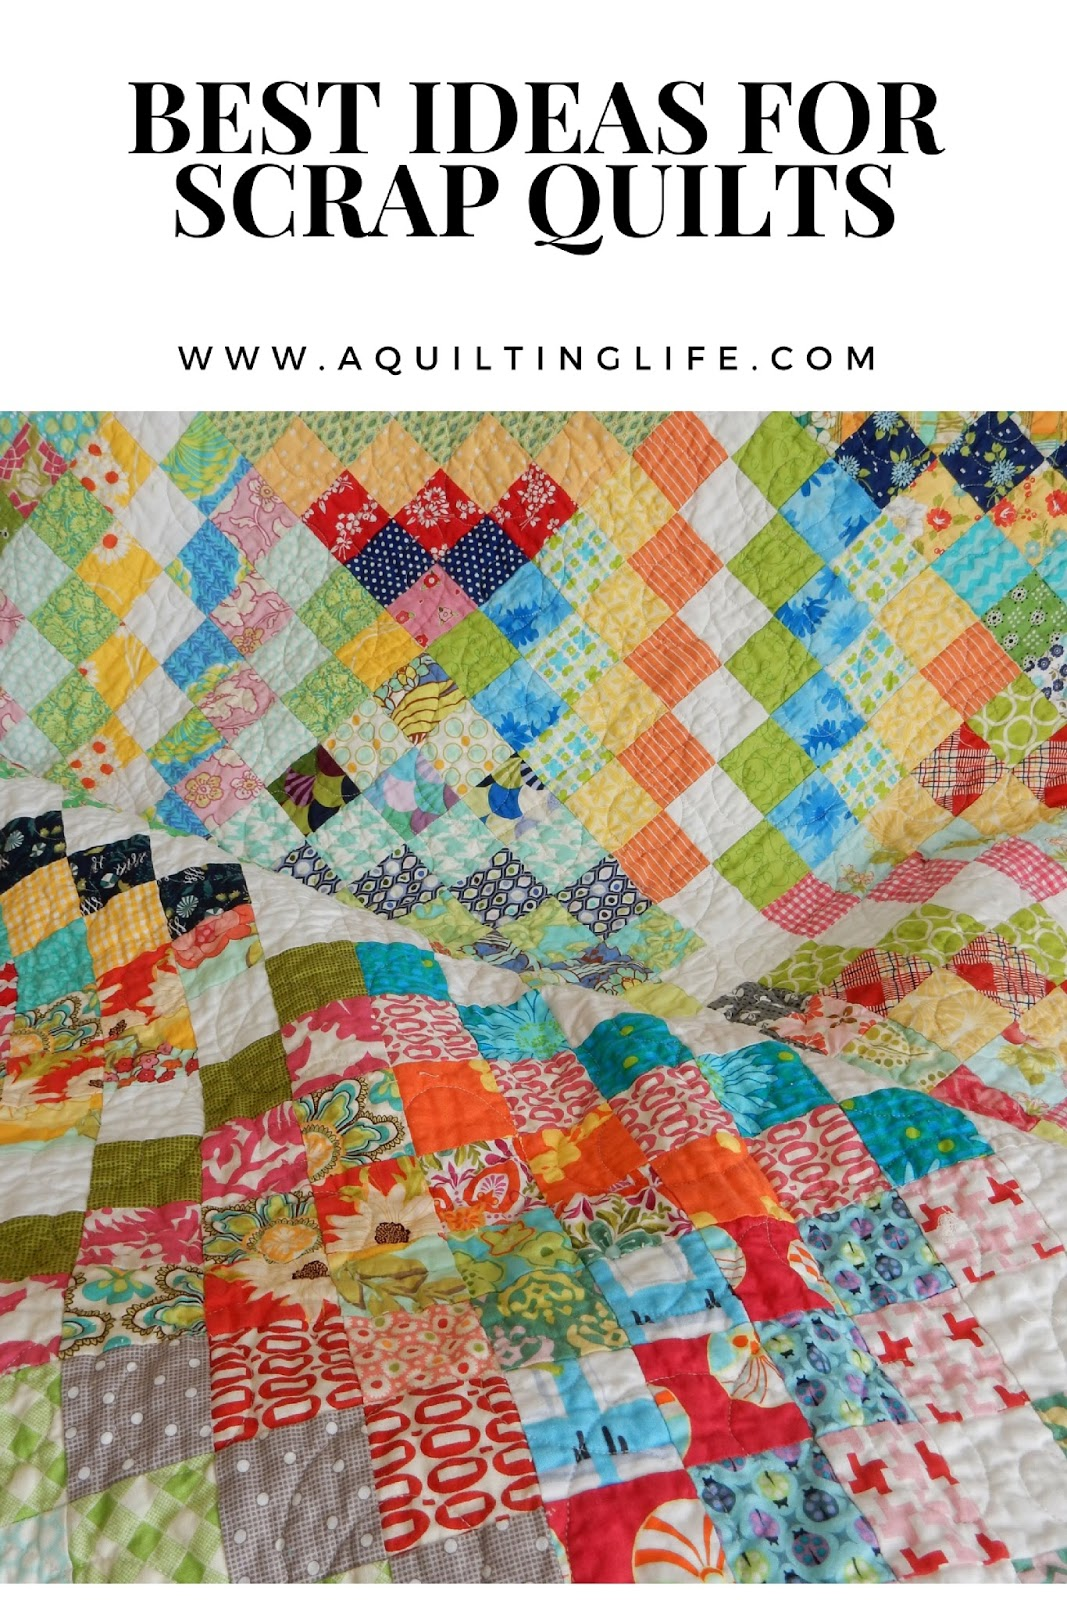 Best ideas for scrap quilting a quilting life a quilt blog for Scrap quilt